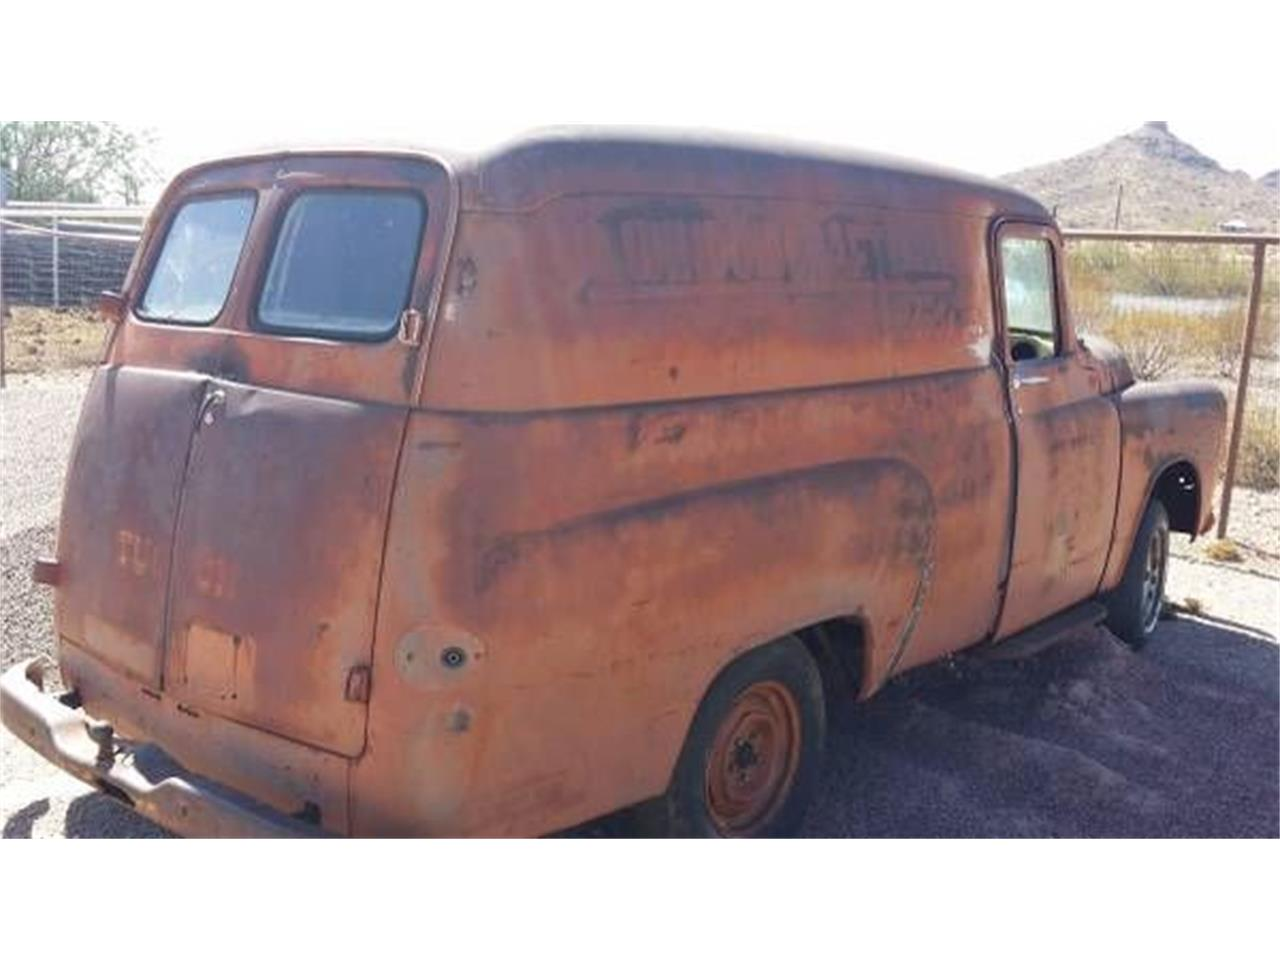 1957 Dodge D100 For Sale Cc 1117061 1949 Truck Large Picture Of Classic 57 699500 Nxxh